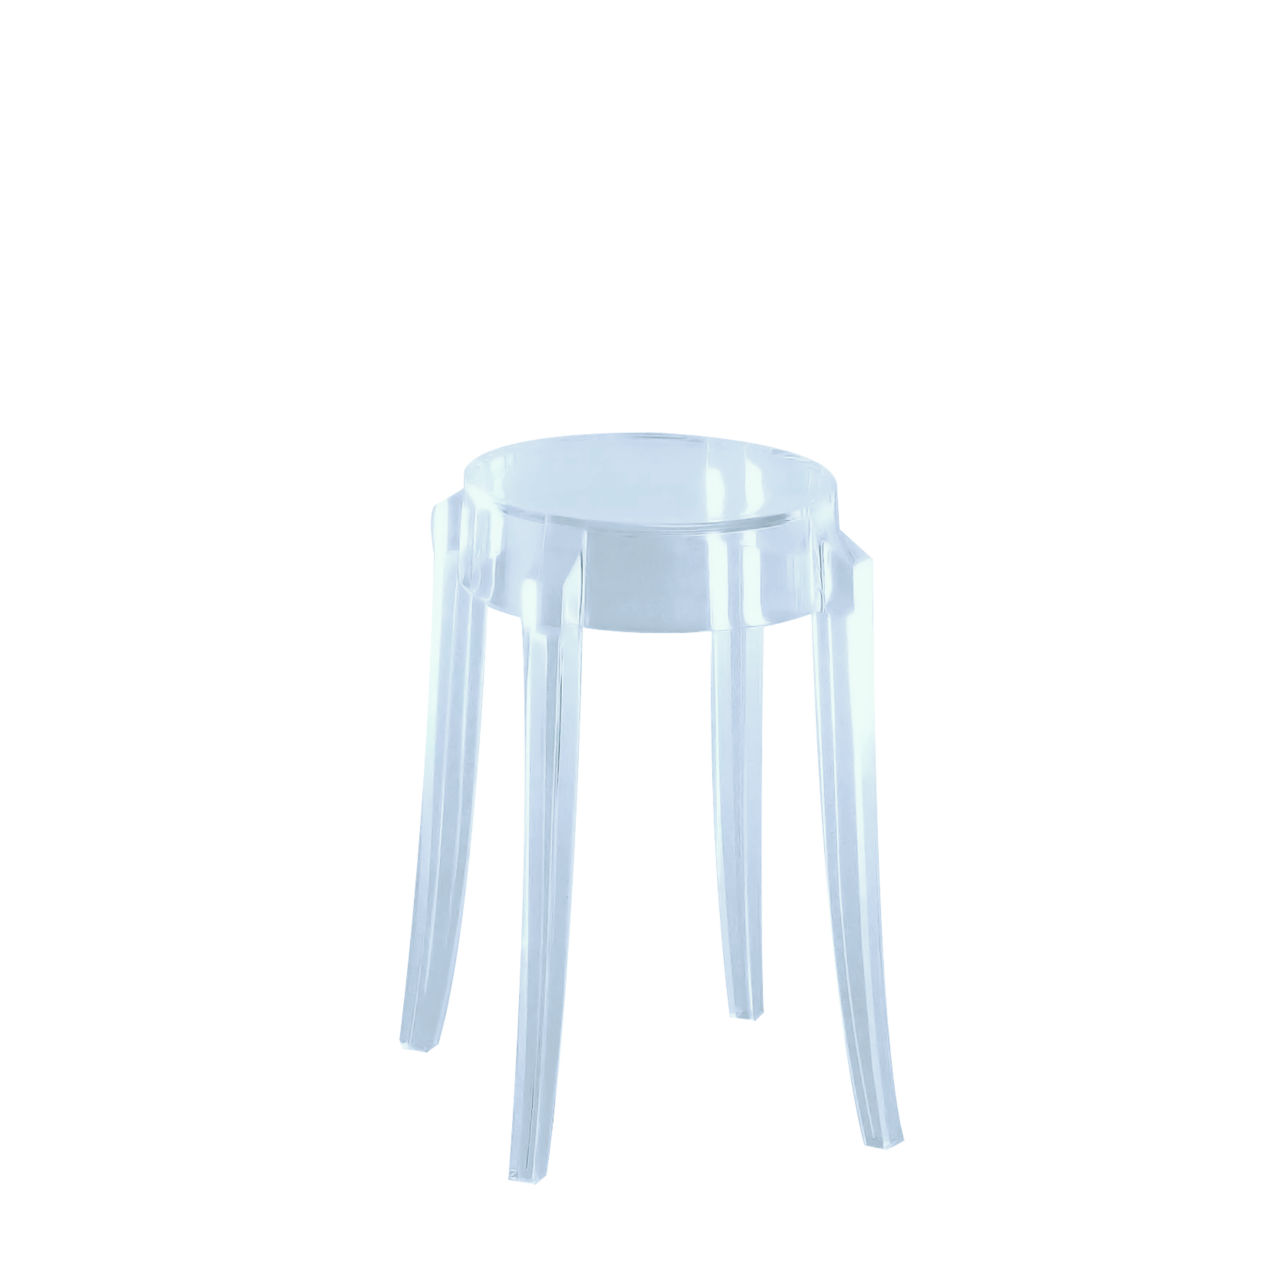 Charles Ghost Stool in Light Blue Small by Kartell